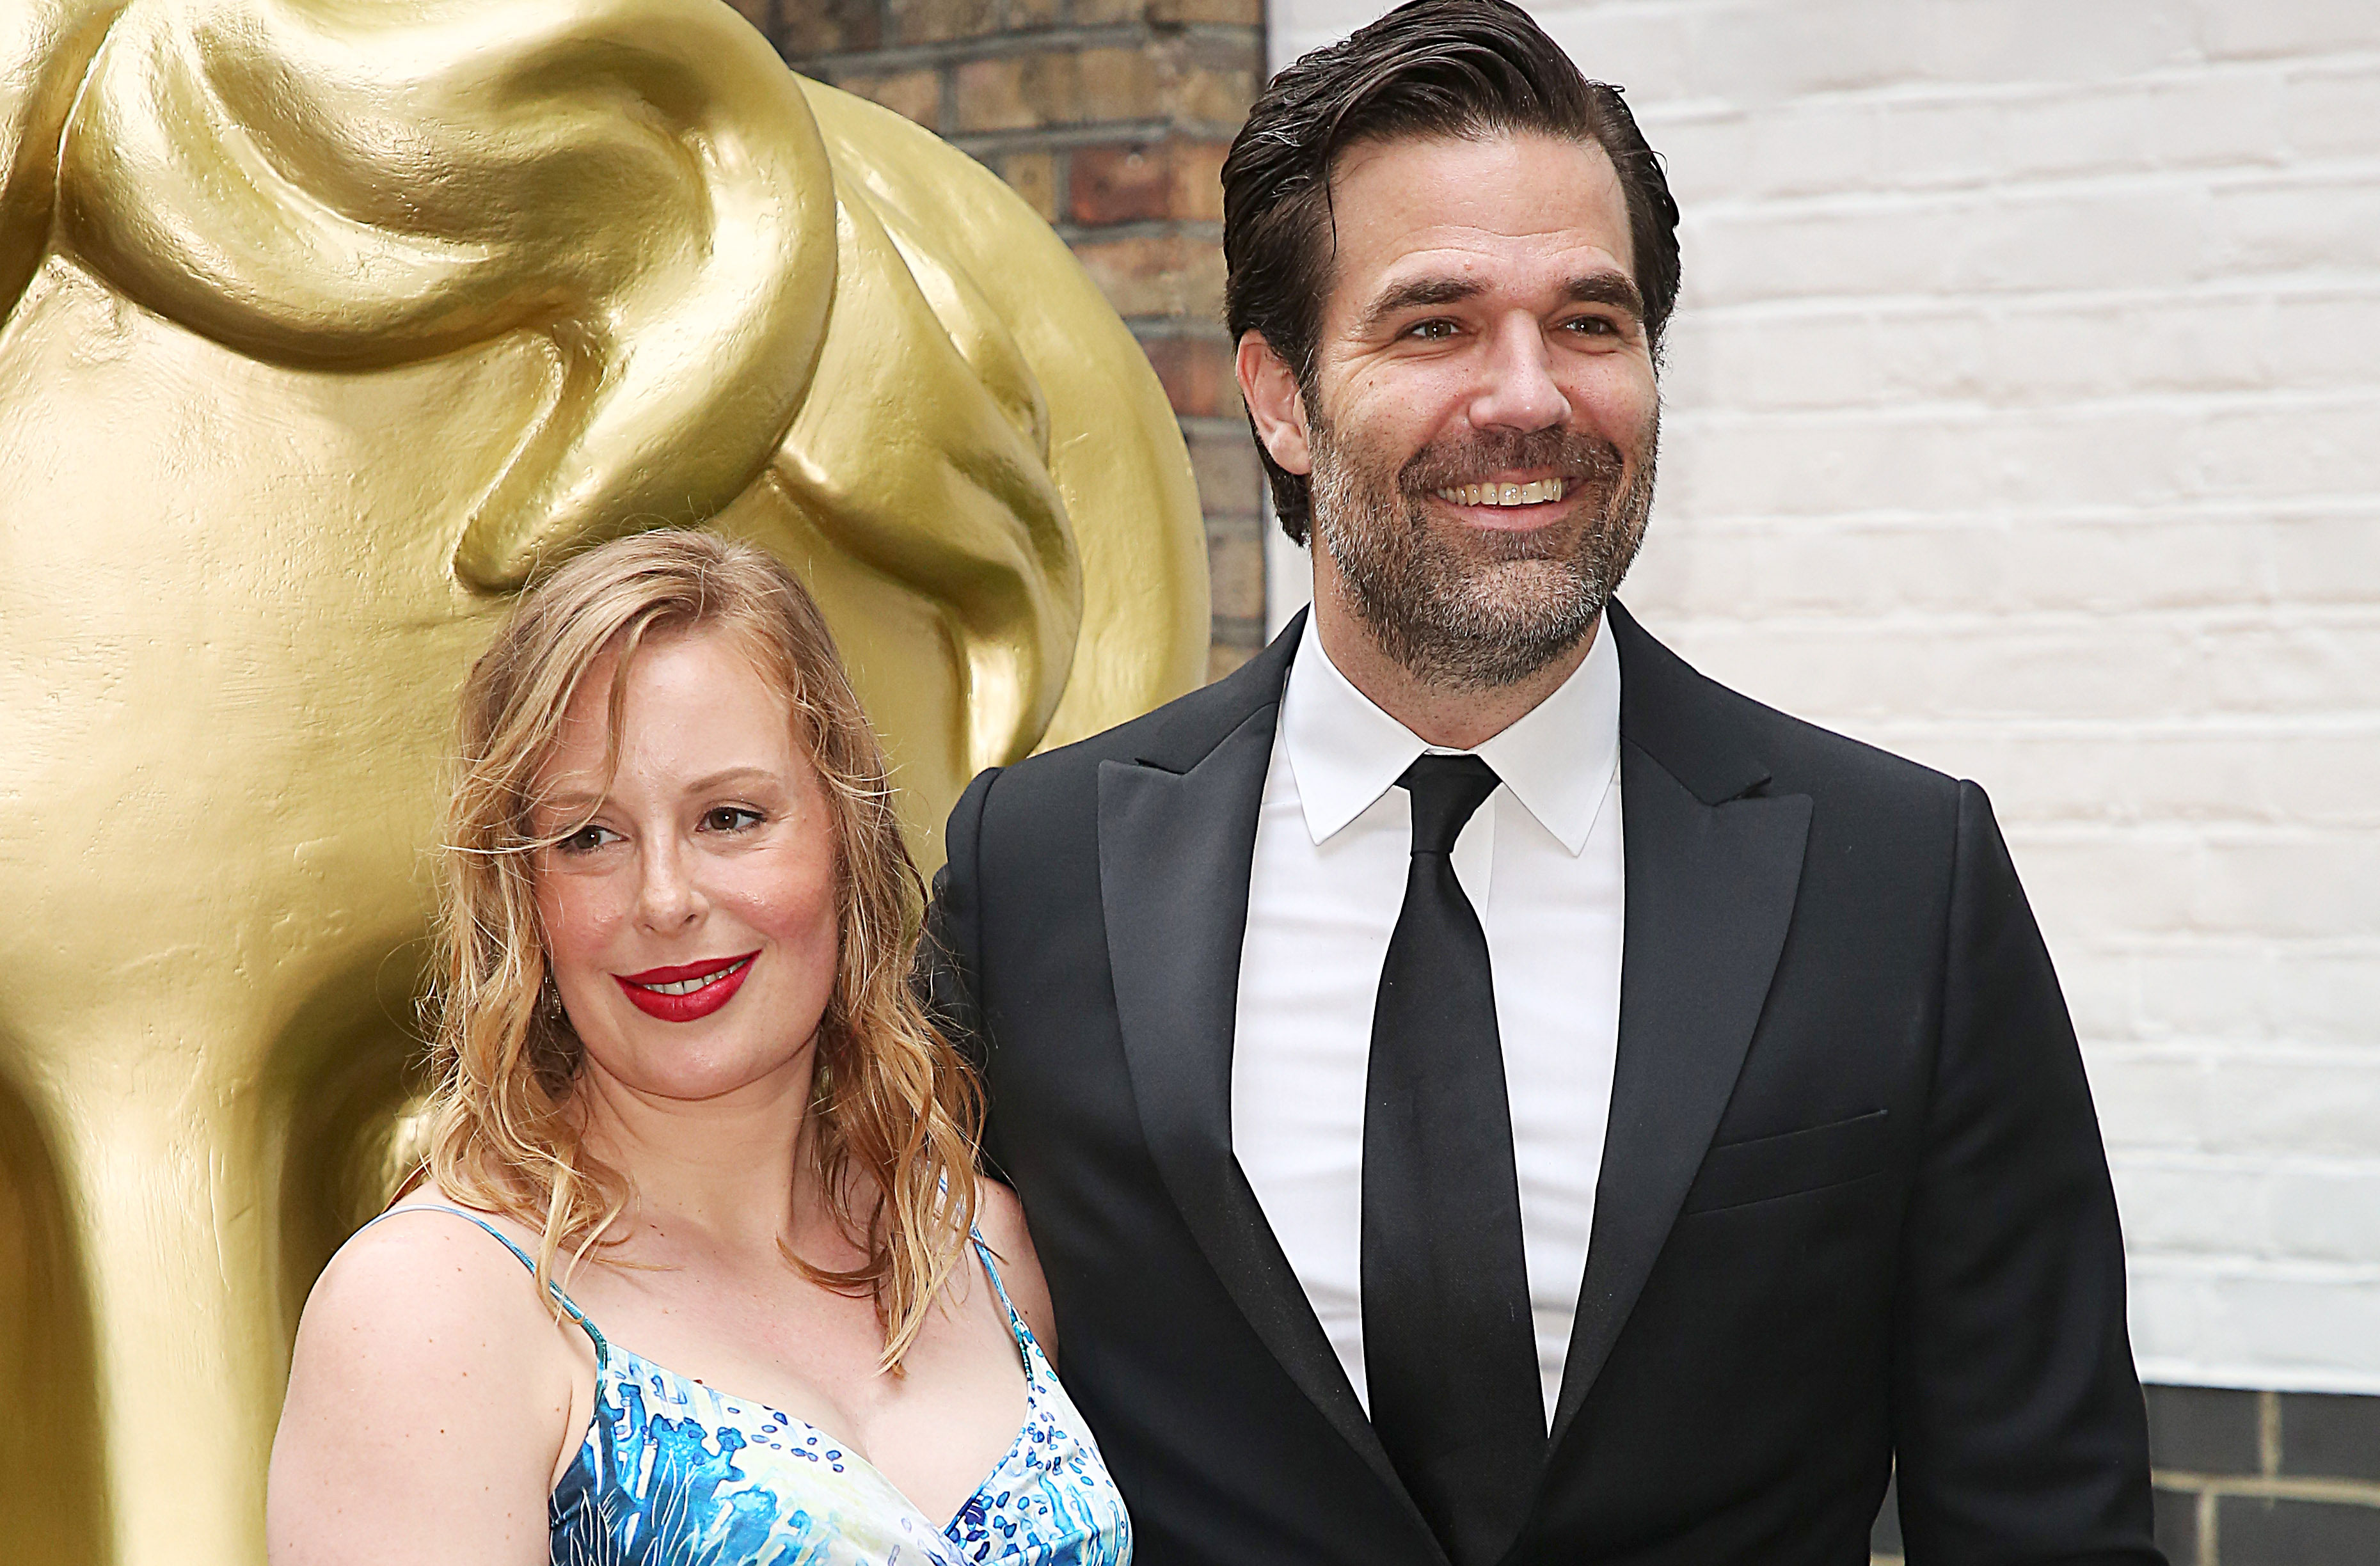 Rob Delaney Announces His Wife Is Pregnant Five Months